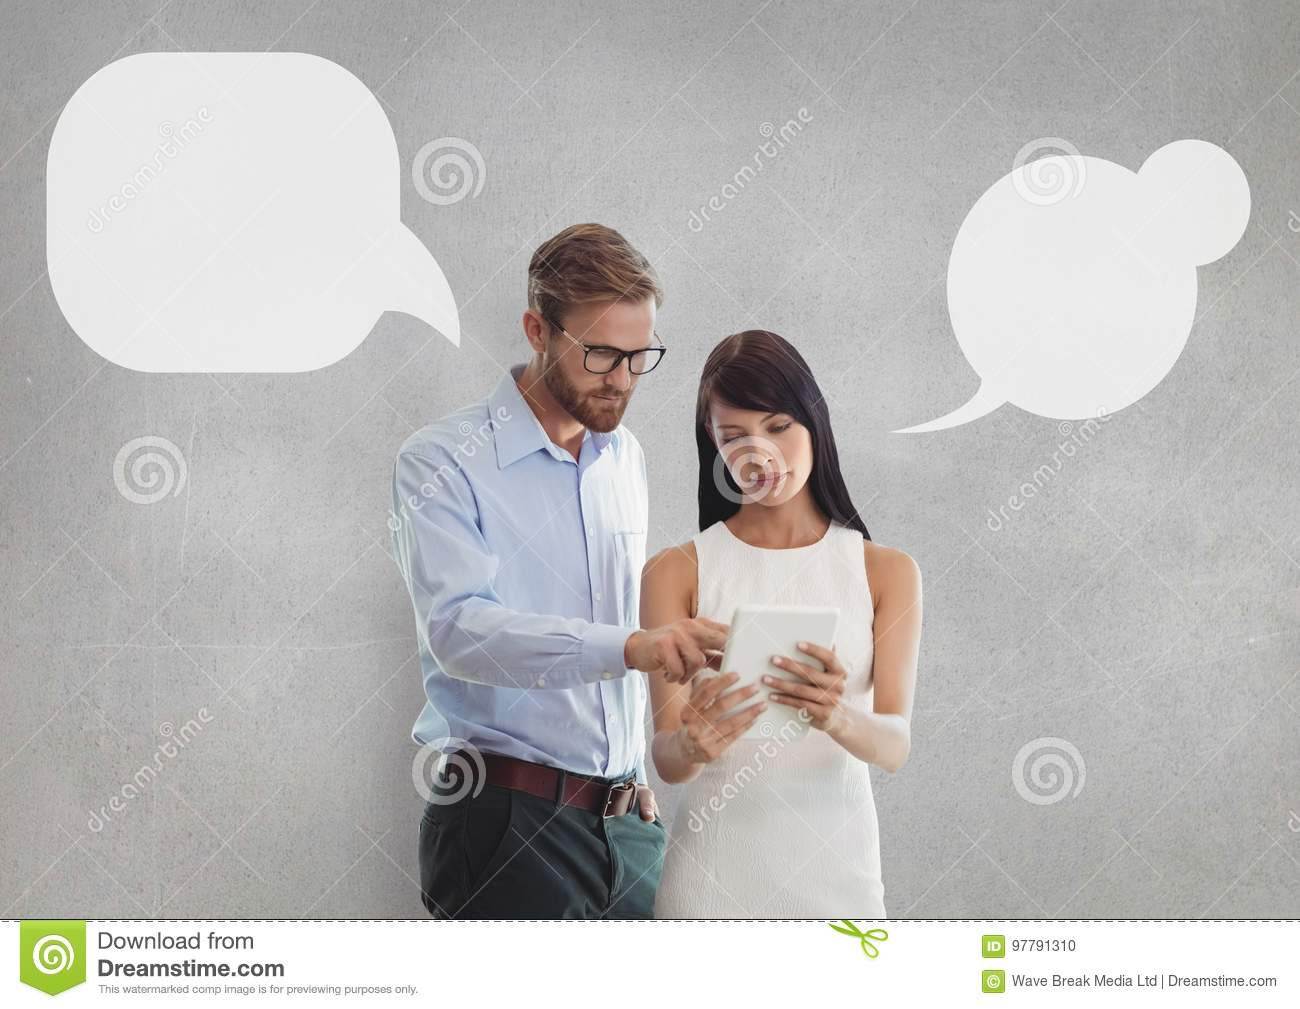 Business people with speech bubbles looking at a tablet against grey background